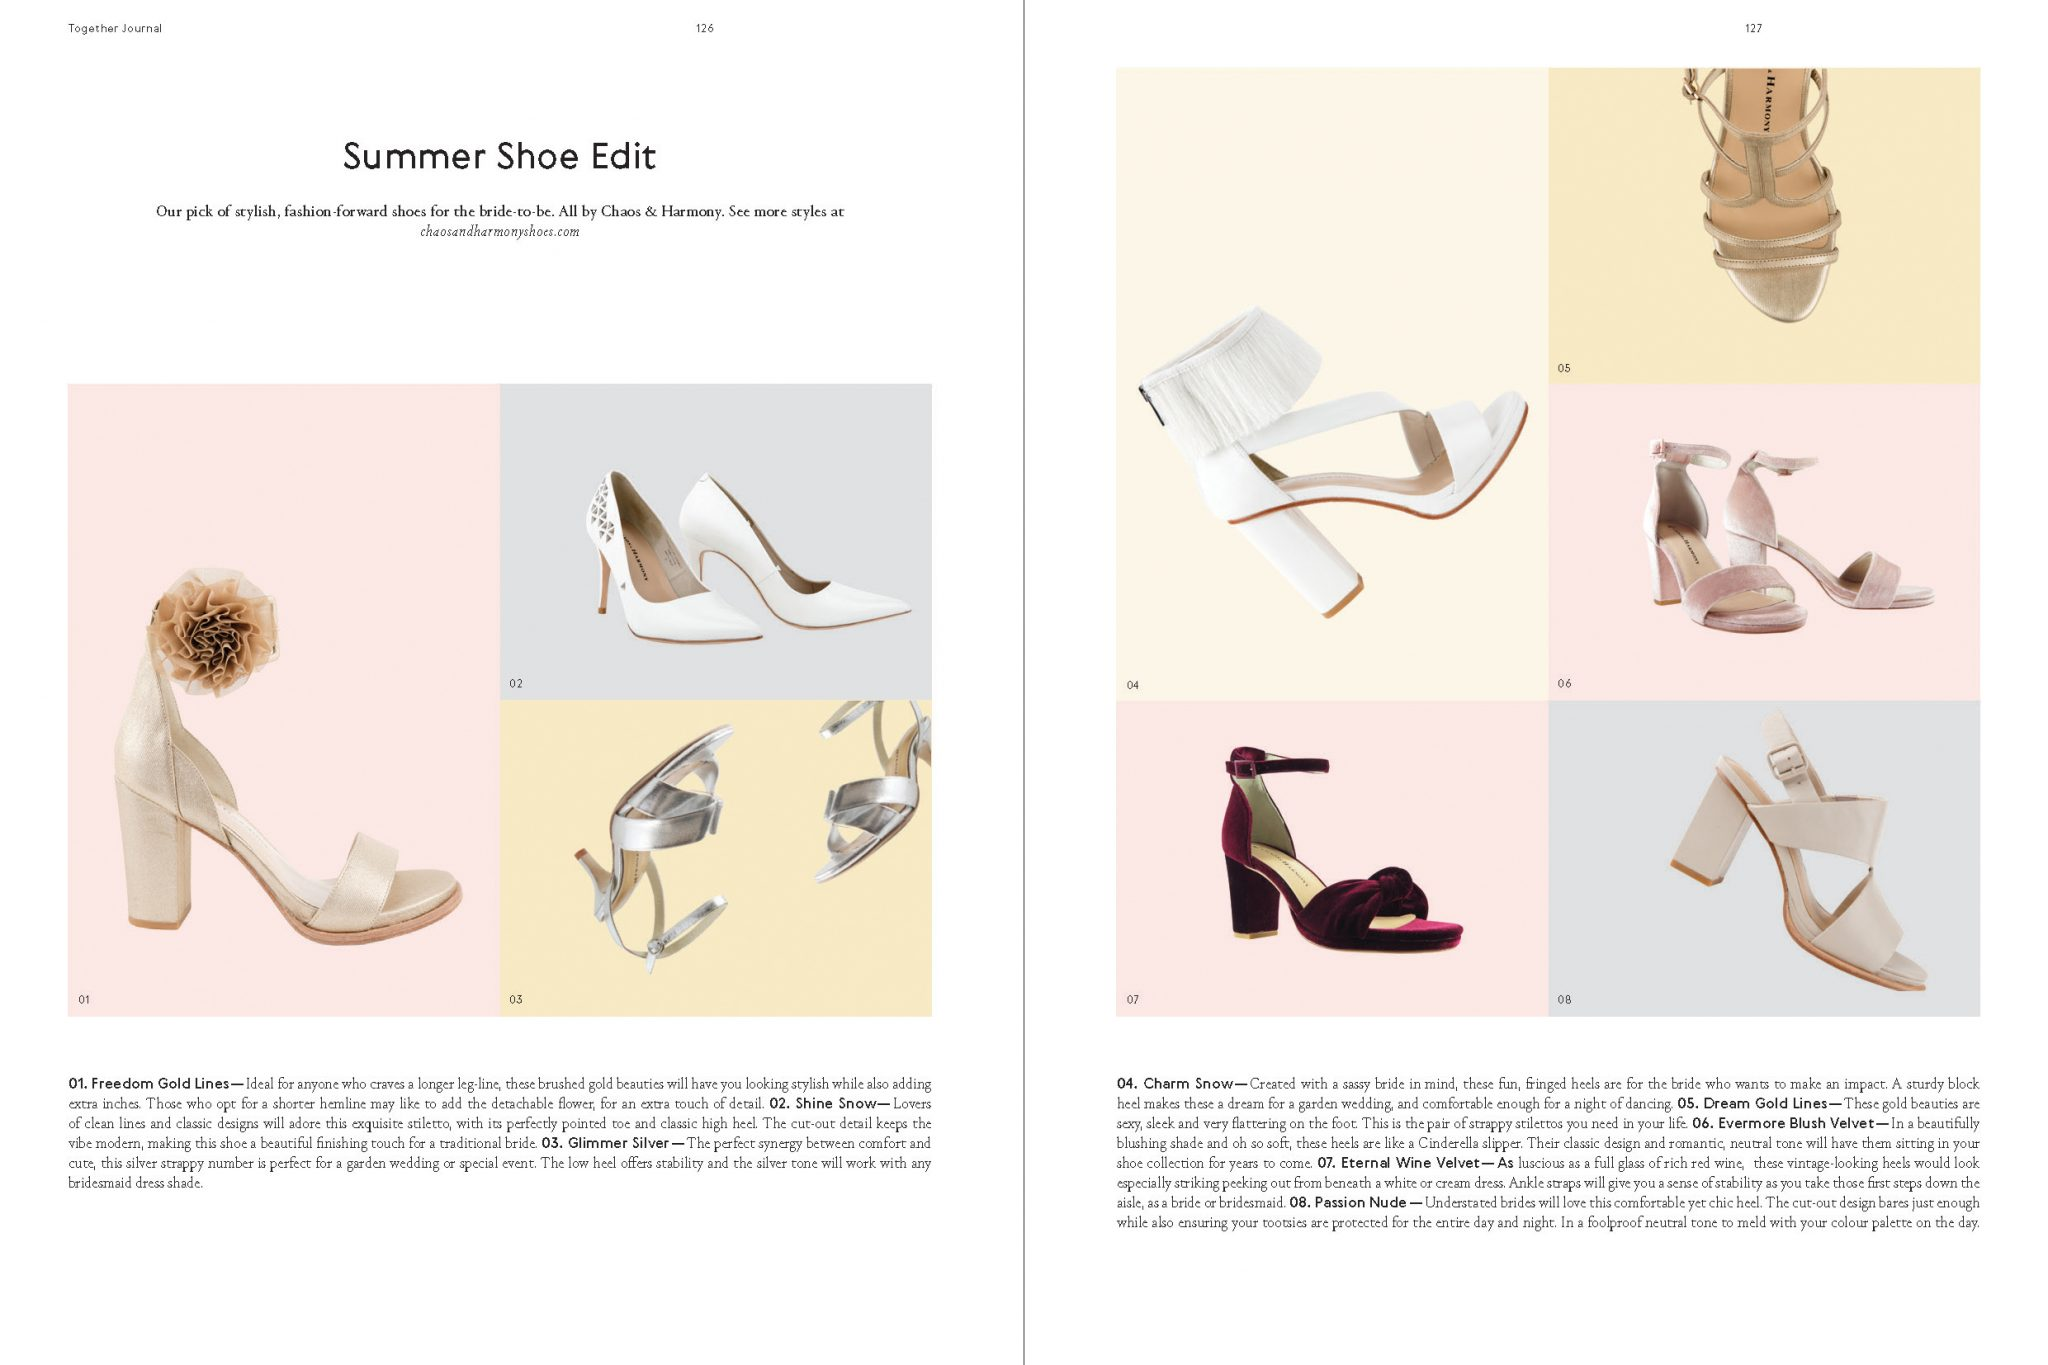 Categories: Fashion-Summer Shoe Edit by Chaos & Harmony